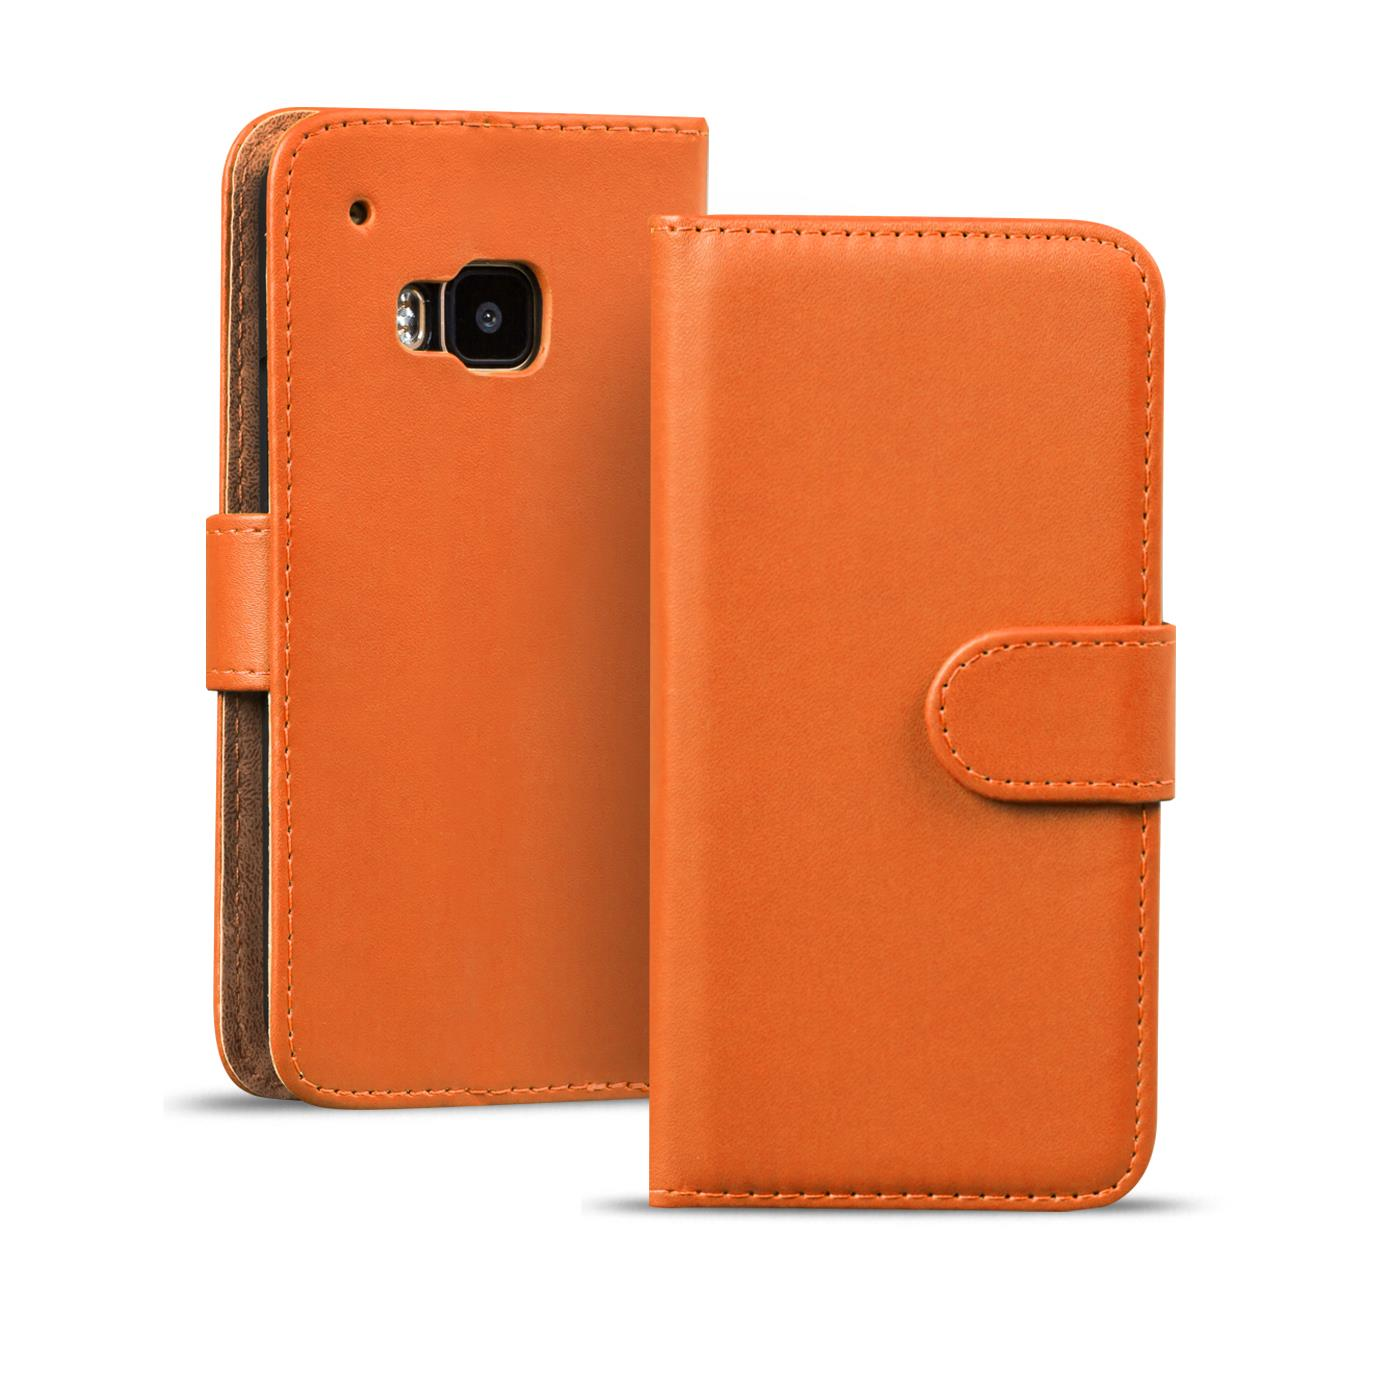 book case f r htc one m7 h lle klapph lle handy schutz tasche flip cover orange ebay. Black Bedroom Furniture Sets. Home Design Ideas